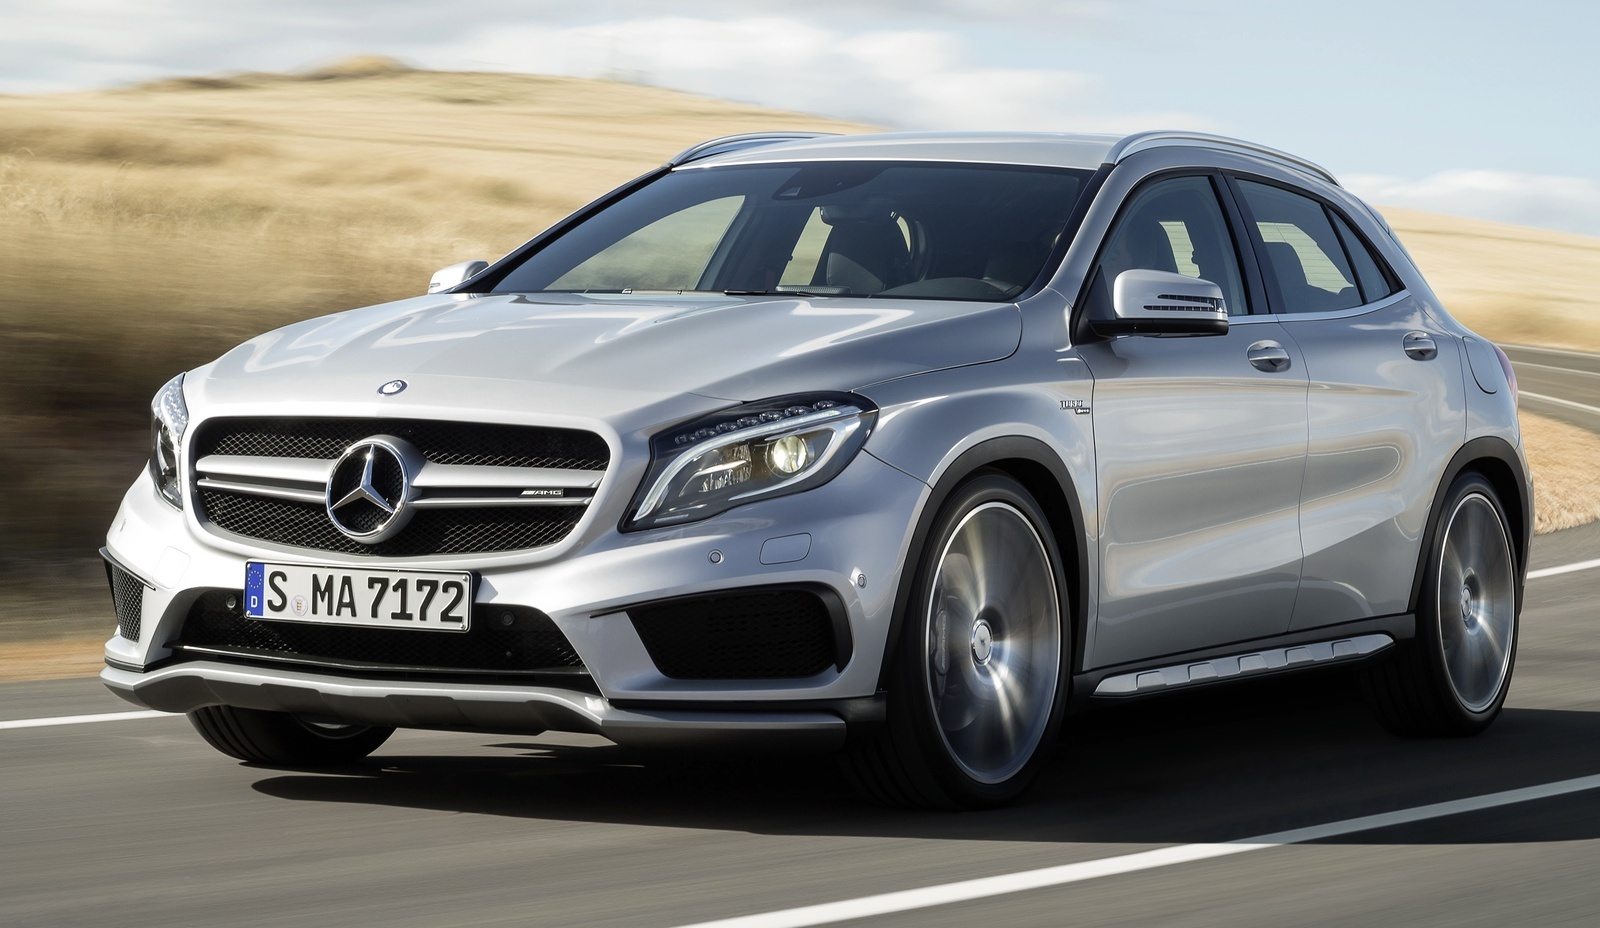 2015 mercedes benz gla class overview cargurus for Mercedes benz account